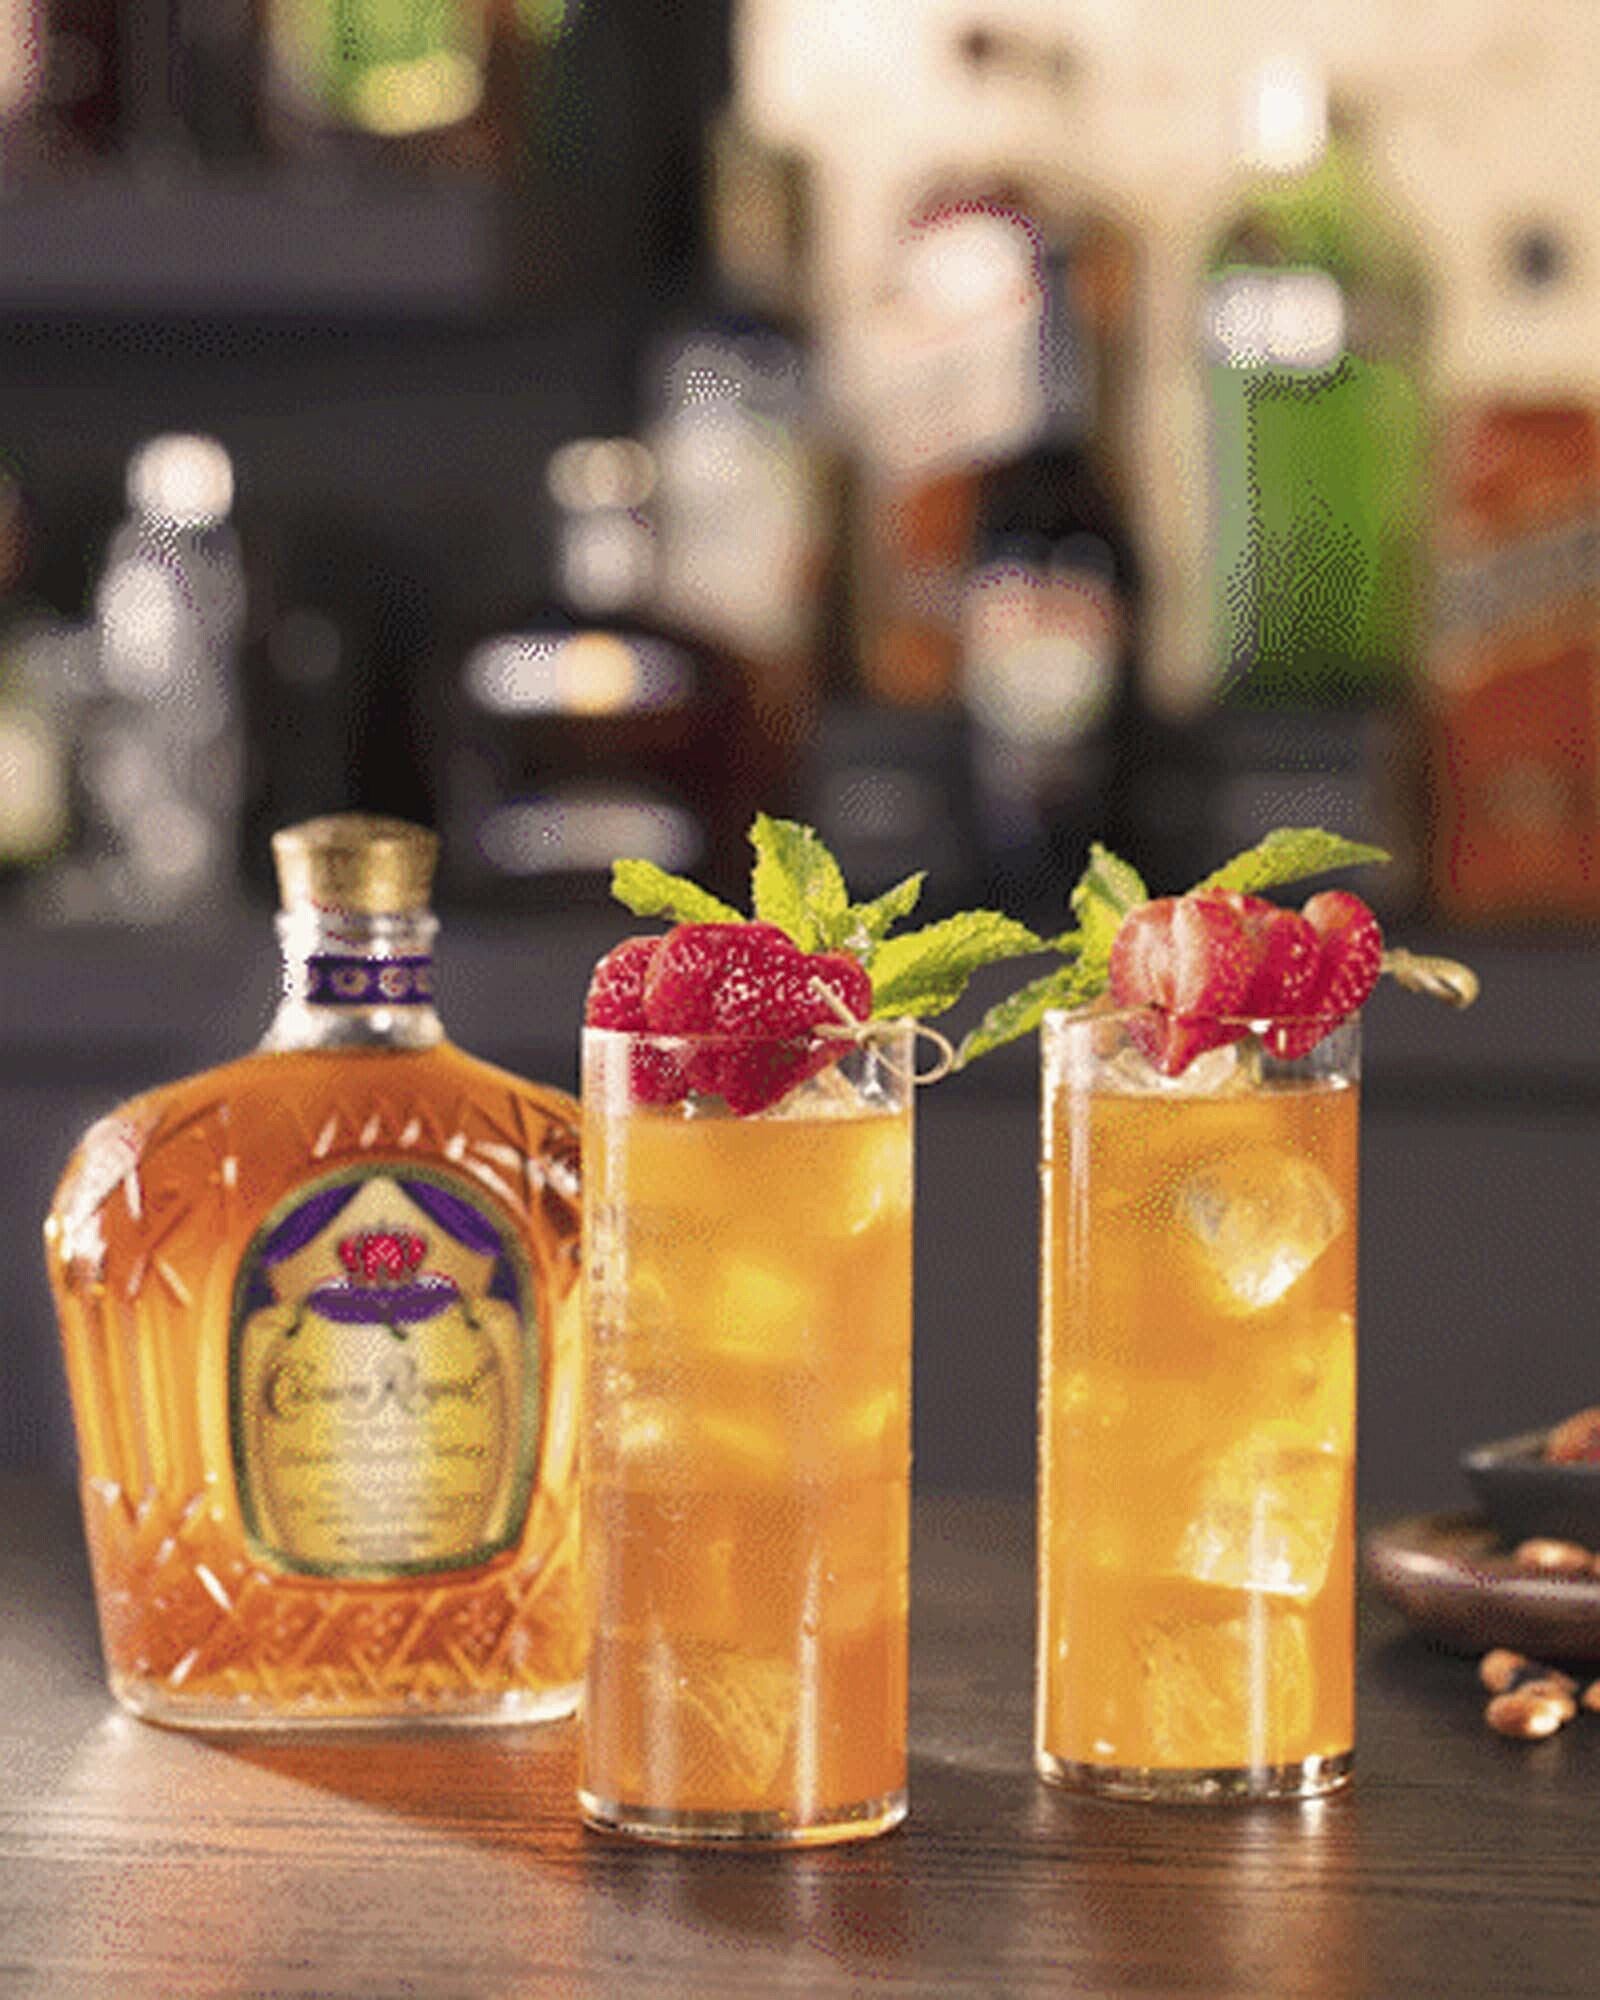 Crown Royal Strawberry Mint iced Tea Whisky Cocktail